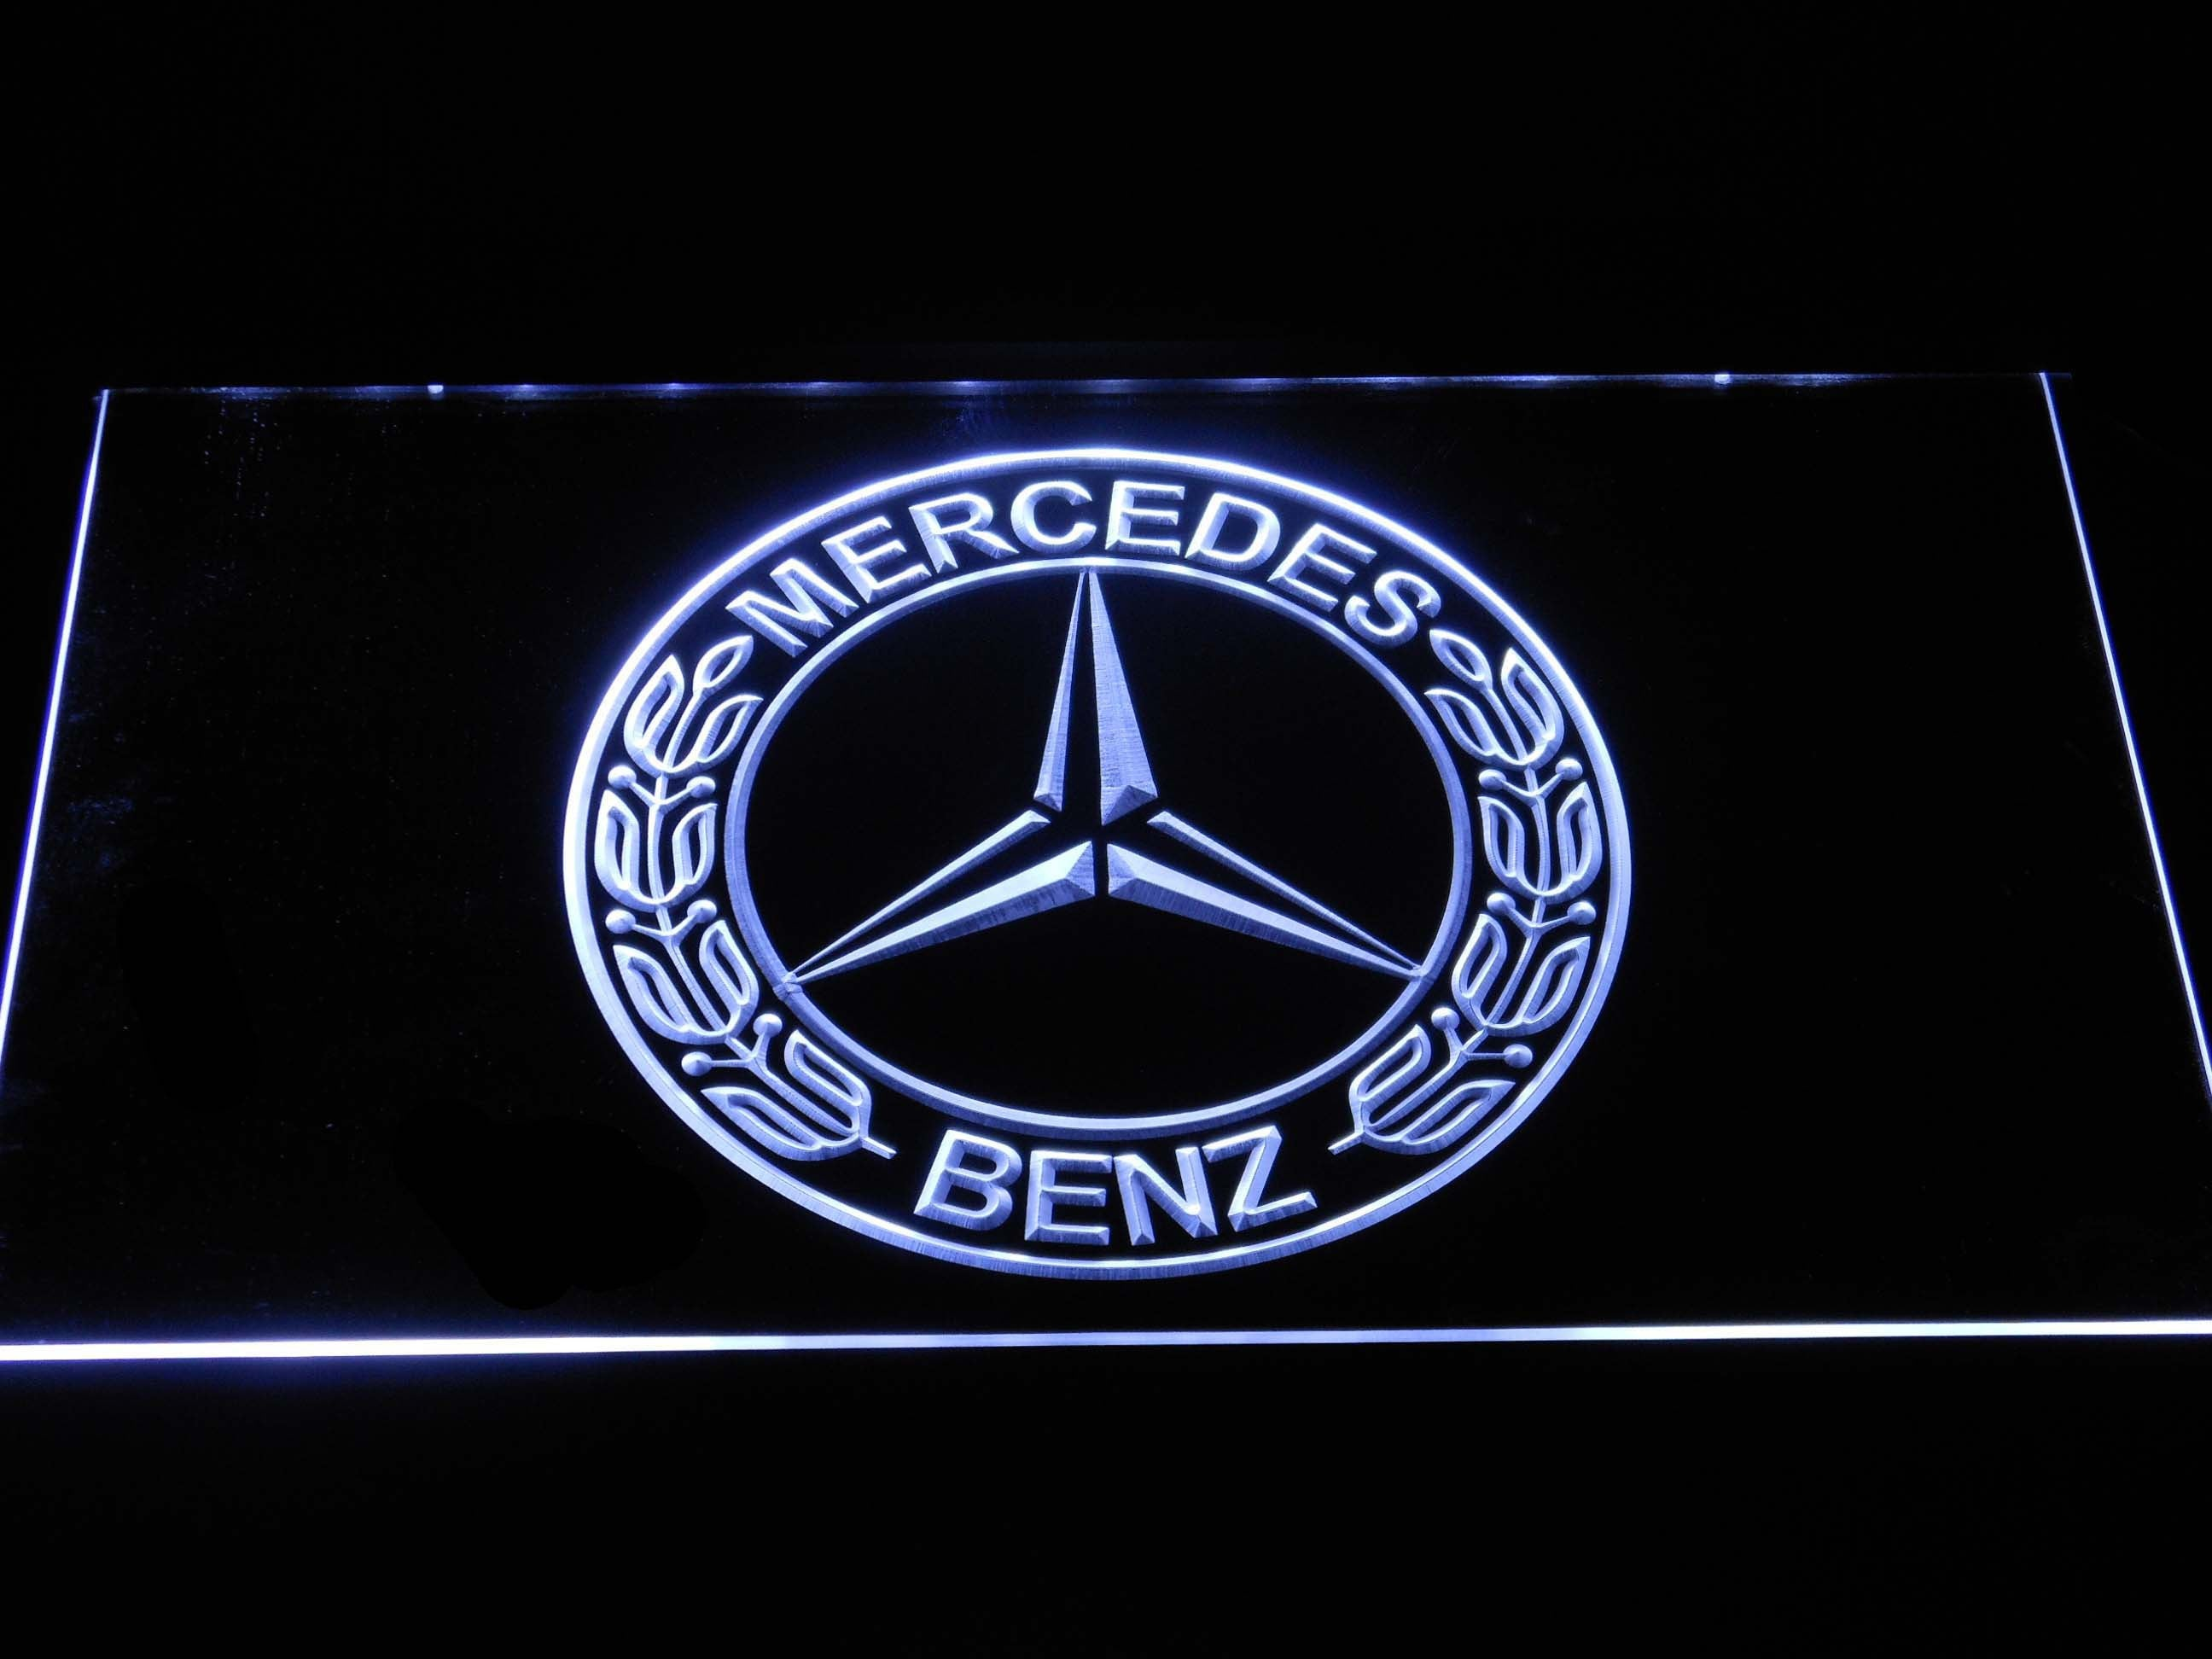 Mercedes benz old logo led neon sign safespecial for Mercedes benz sign in